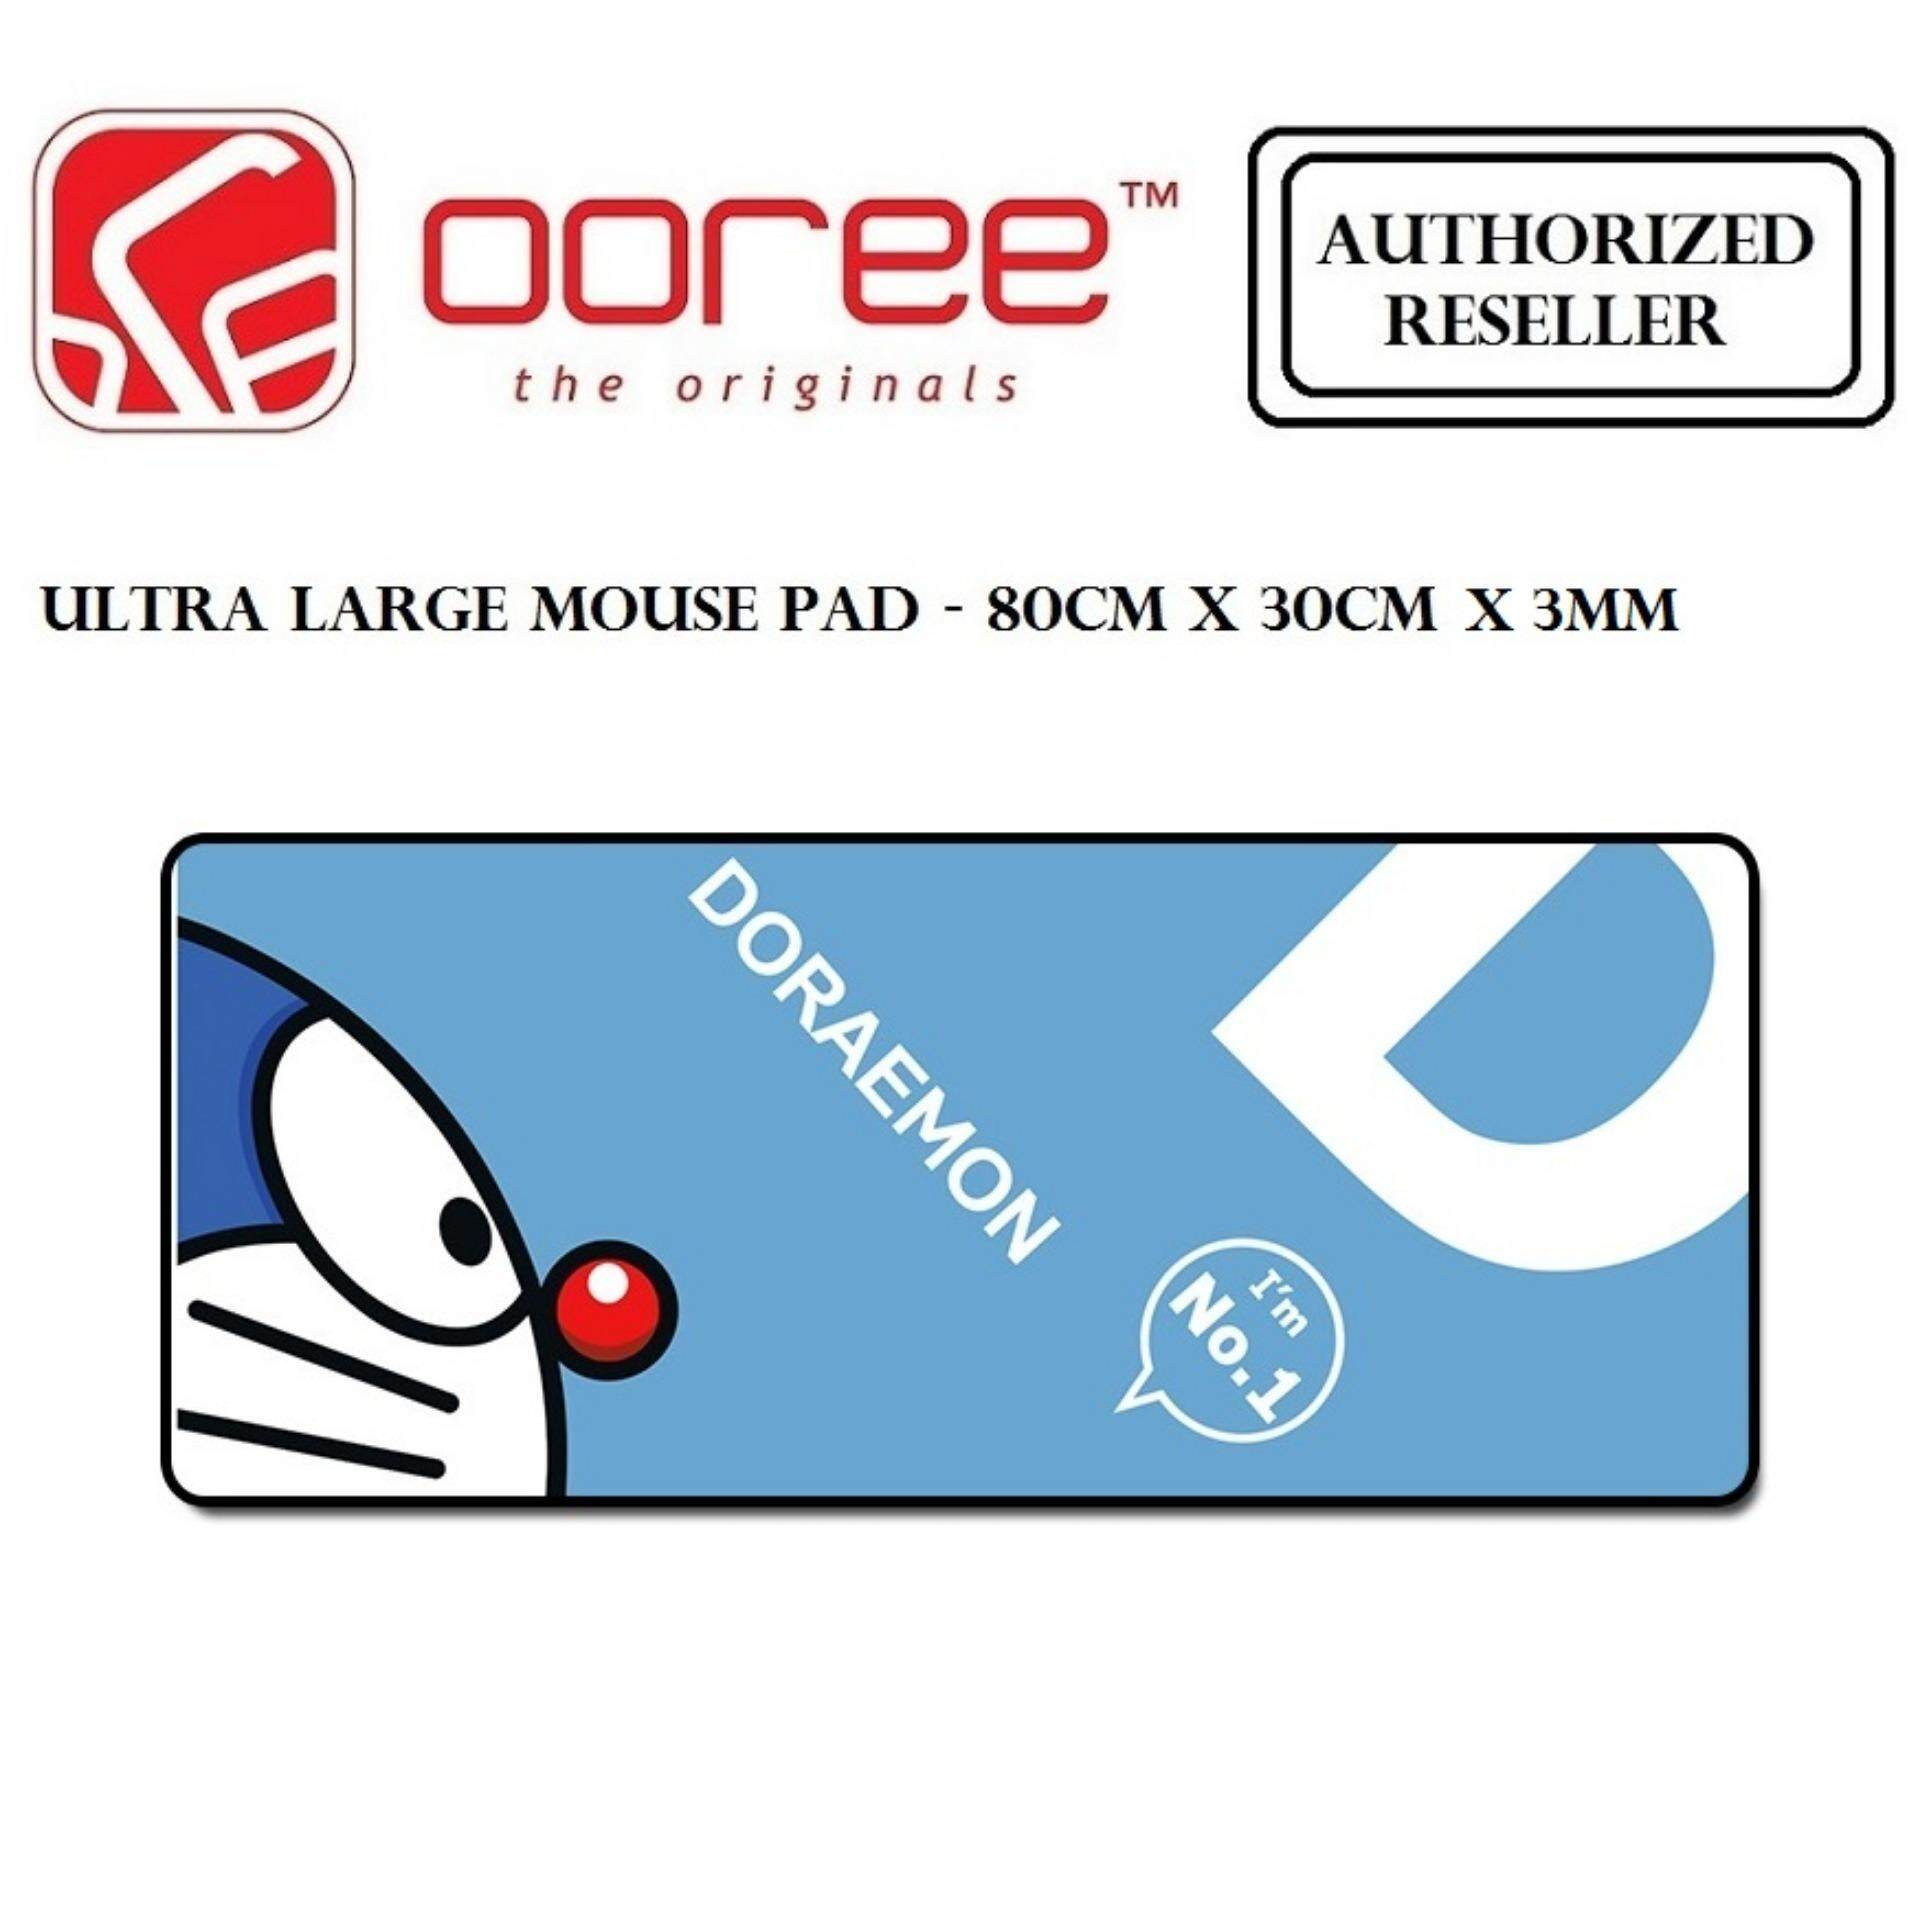 ULTRA LARGE ANTI-FLIP RUBBER SOFT TEXTILE GAMING MOUSE PAD - 80CM X 30CM x 3MM Malaysia